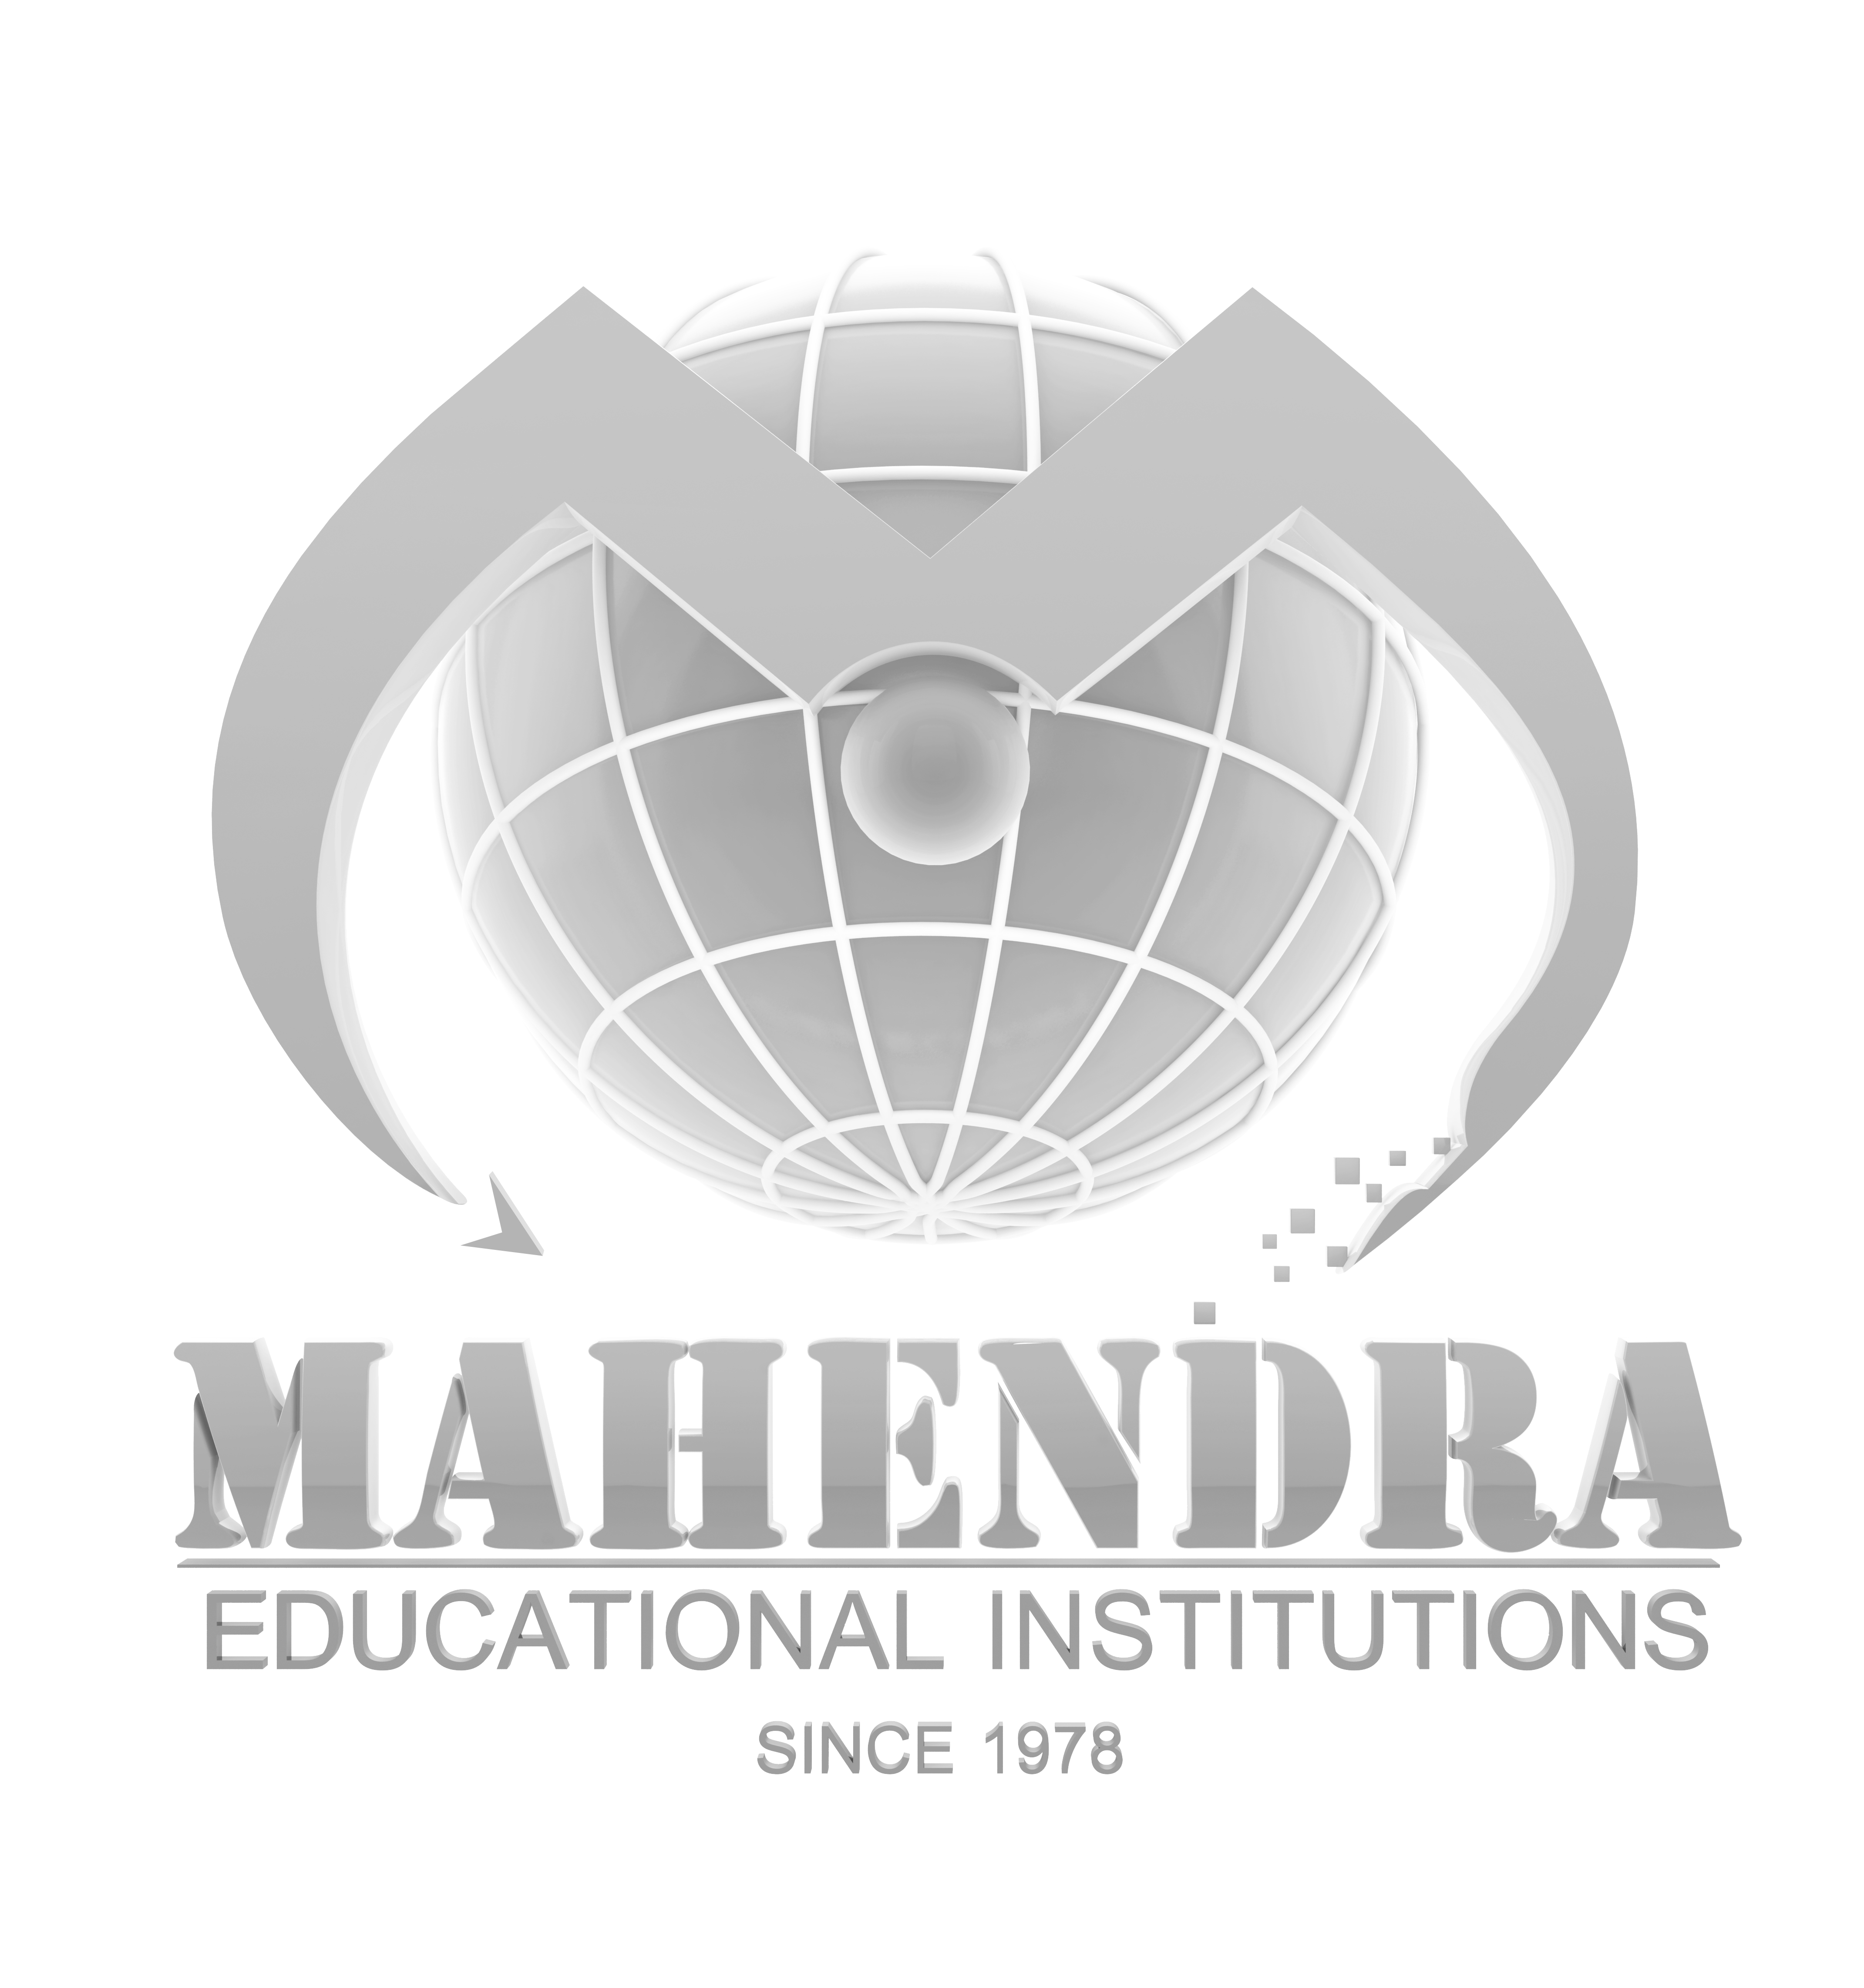 Mahendra College Of Engineering Top In Tamilnadu Electronic Circuit Design And Simulation Software Details Anna Useful Links